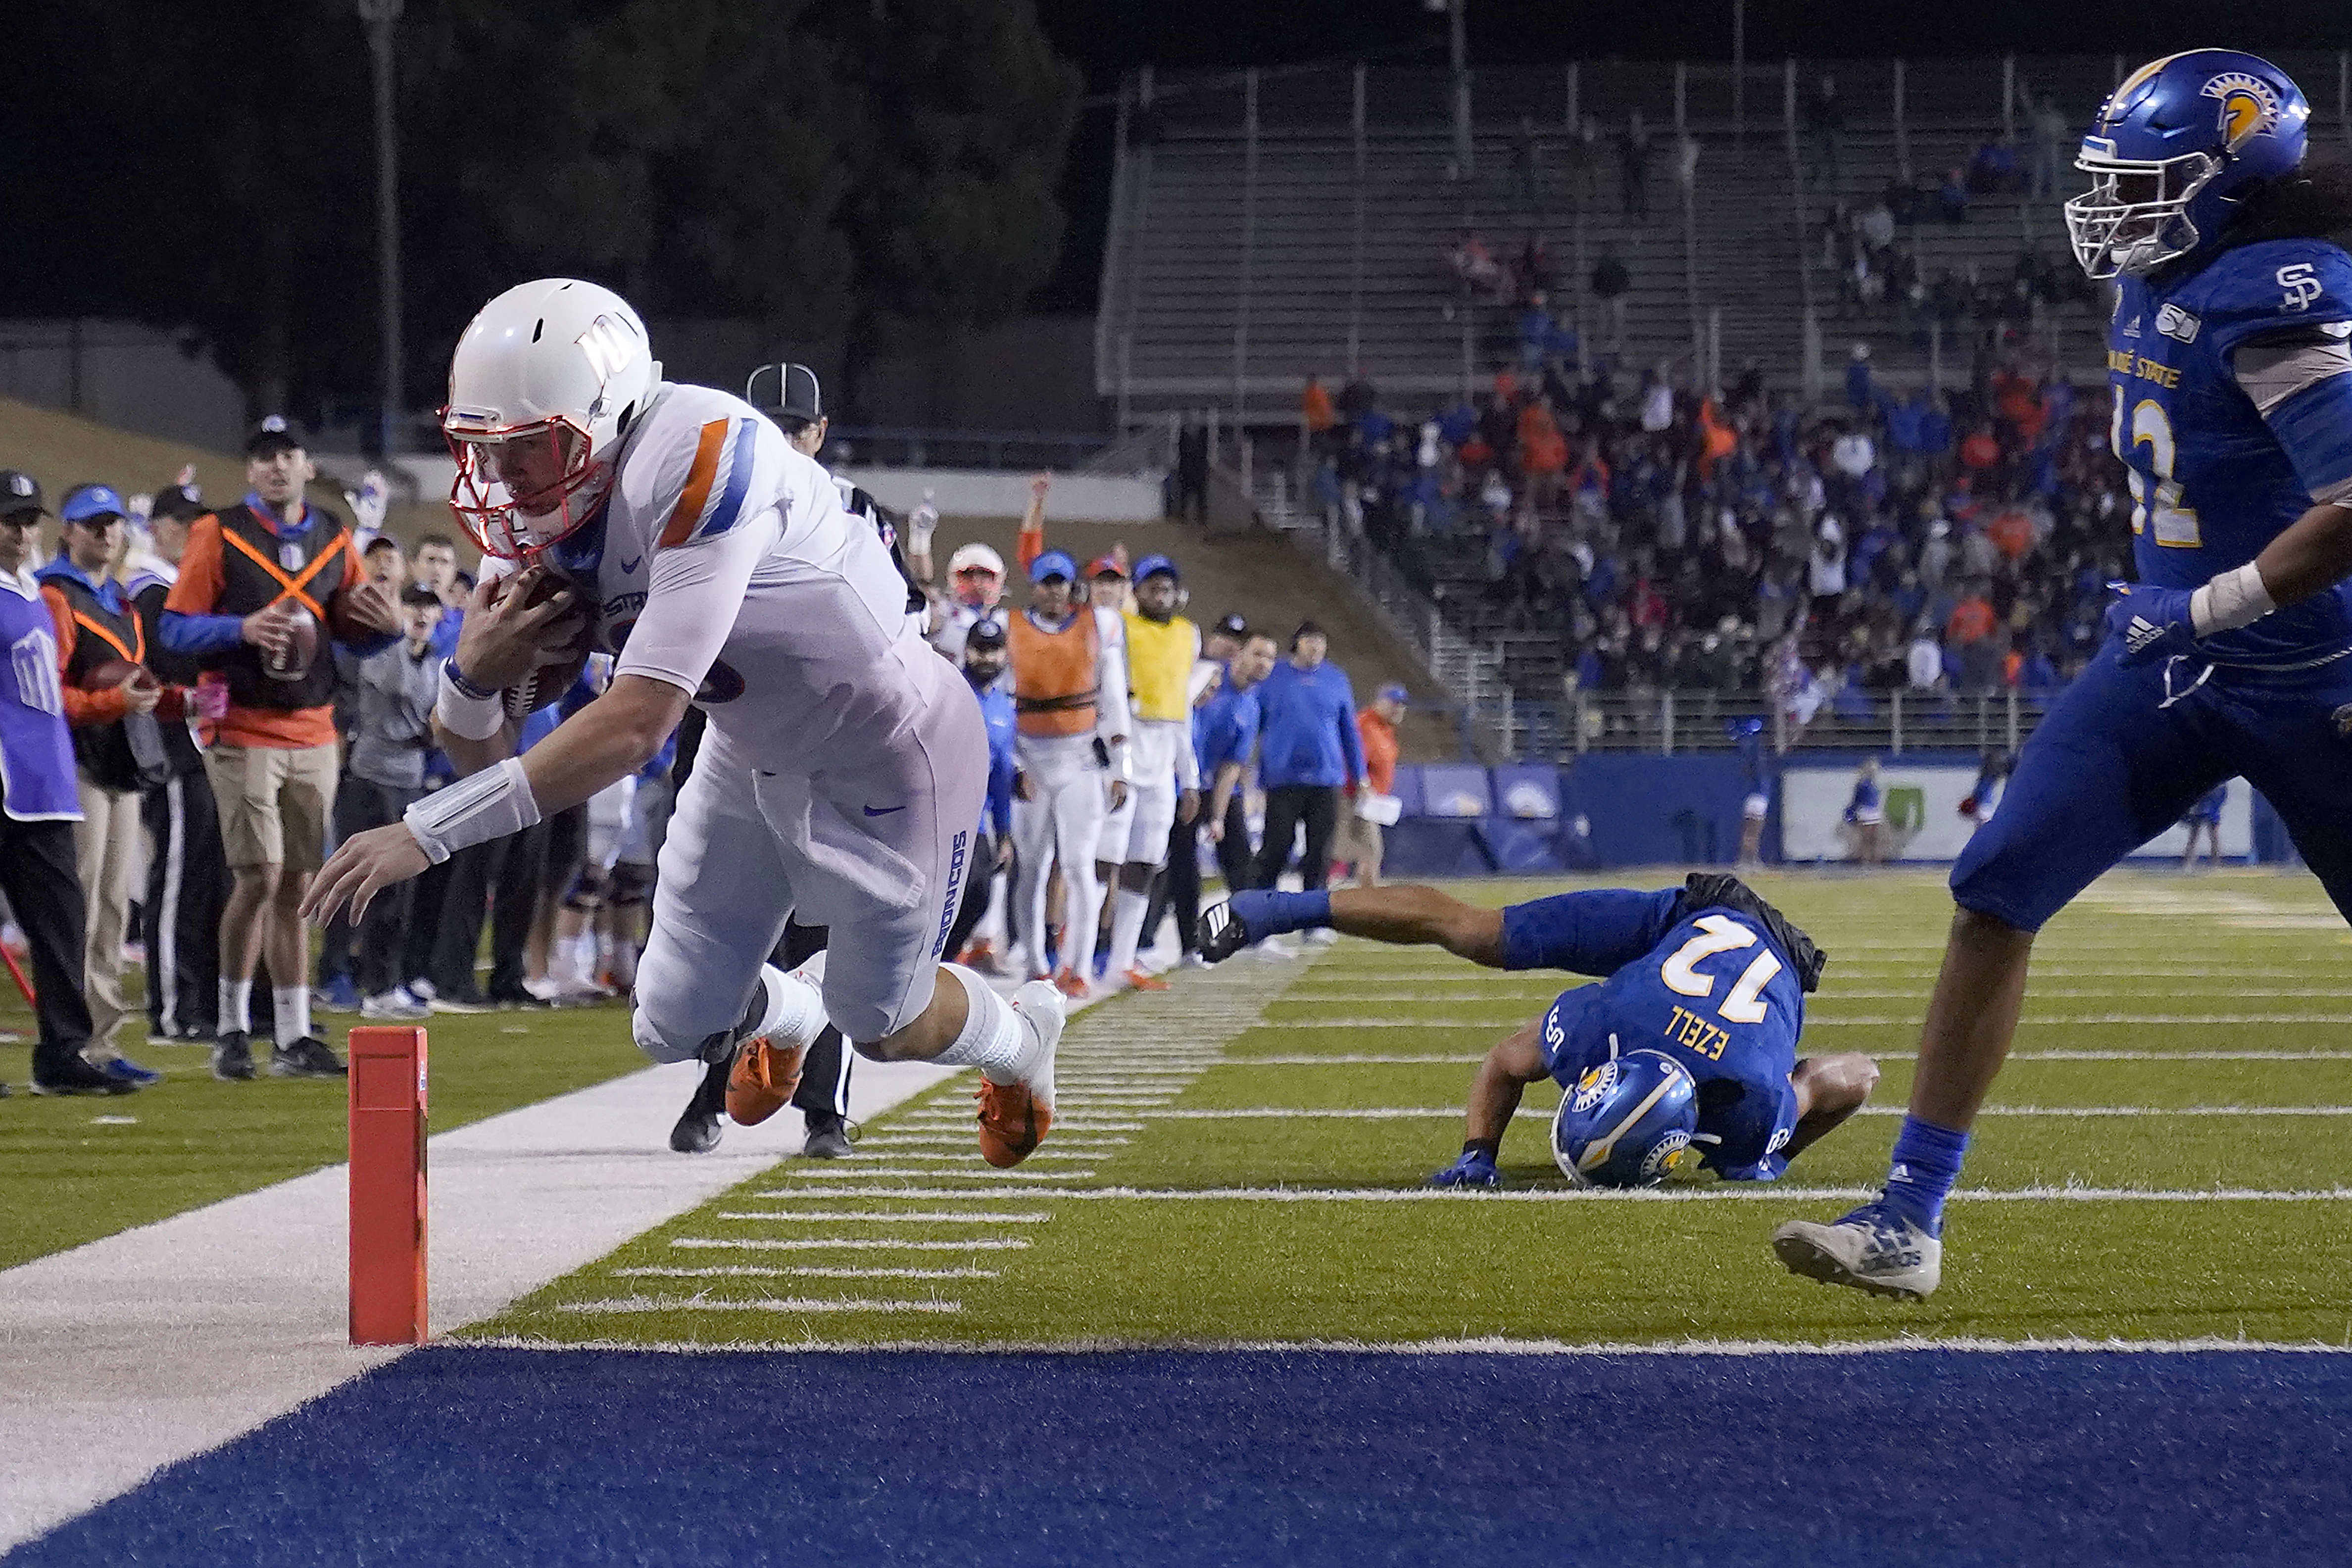 No. 21 Boise State returns home to host upstart Wyoming